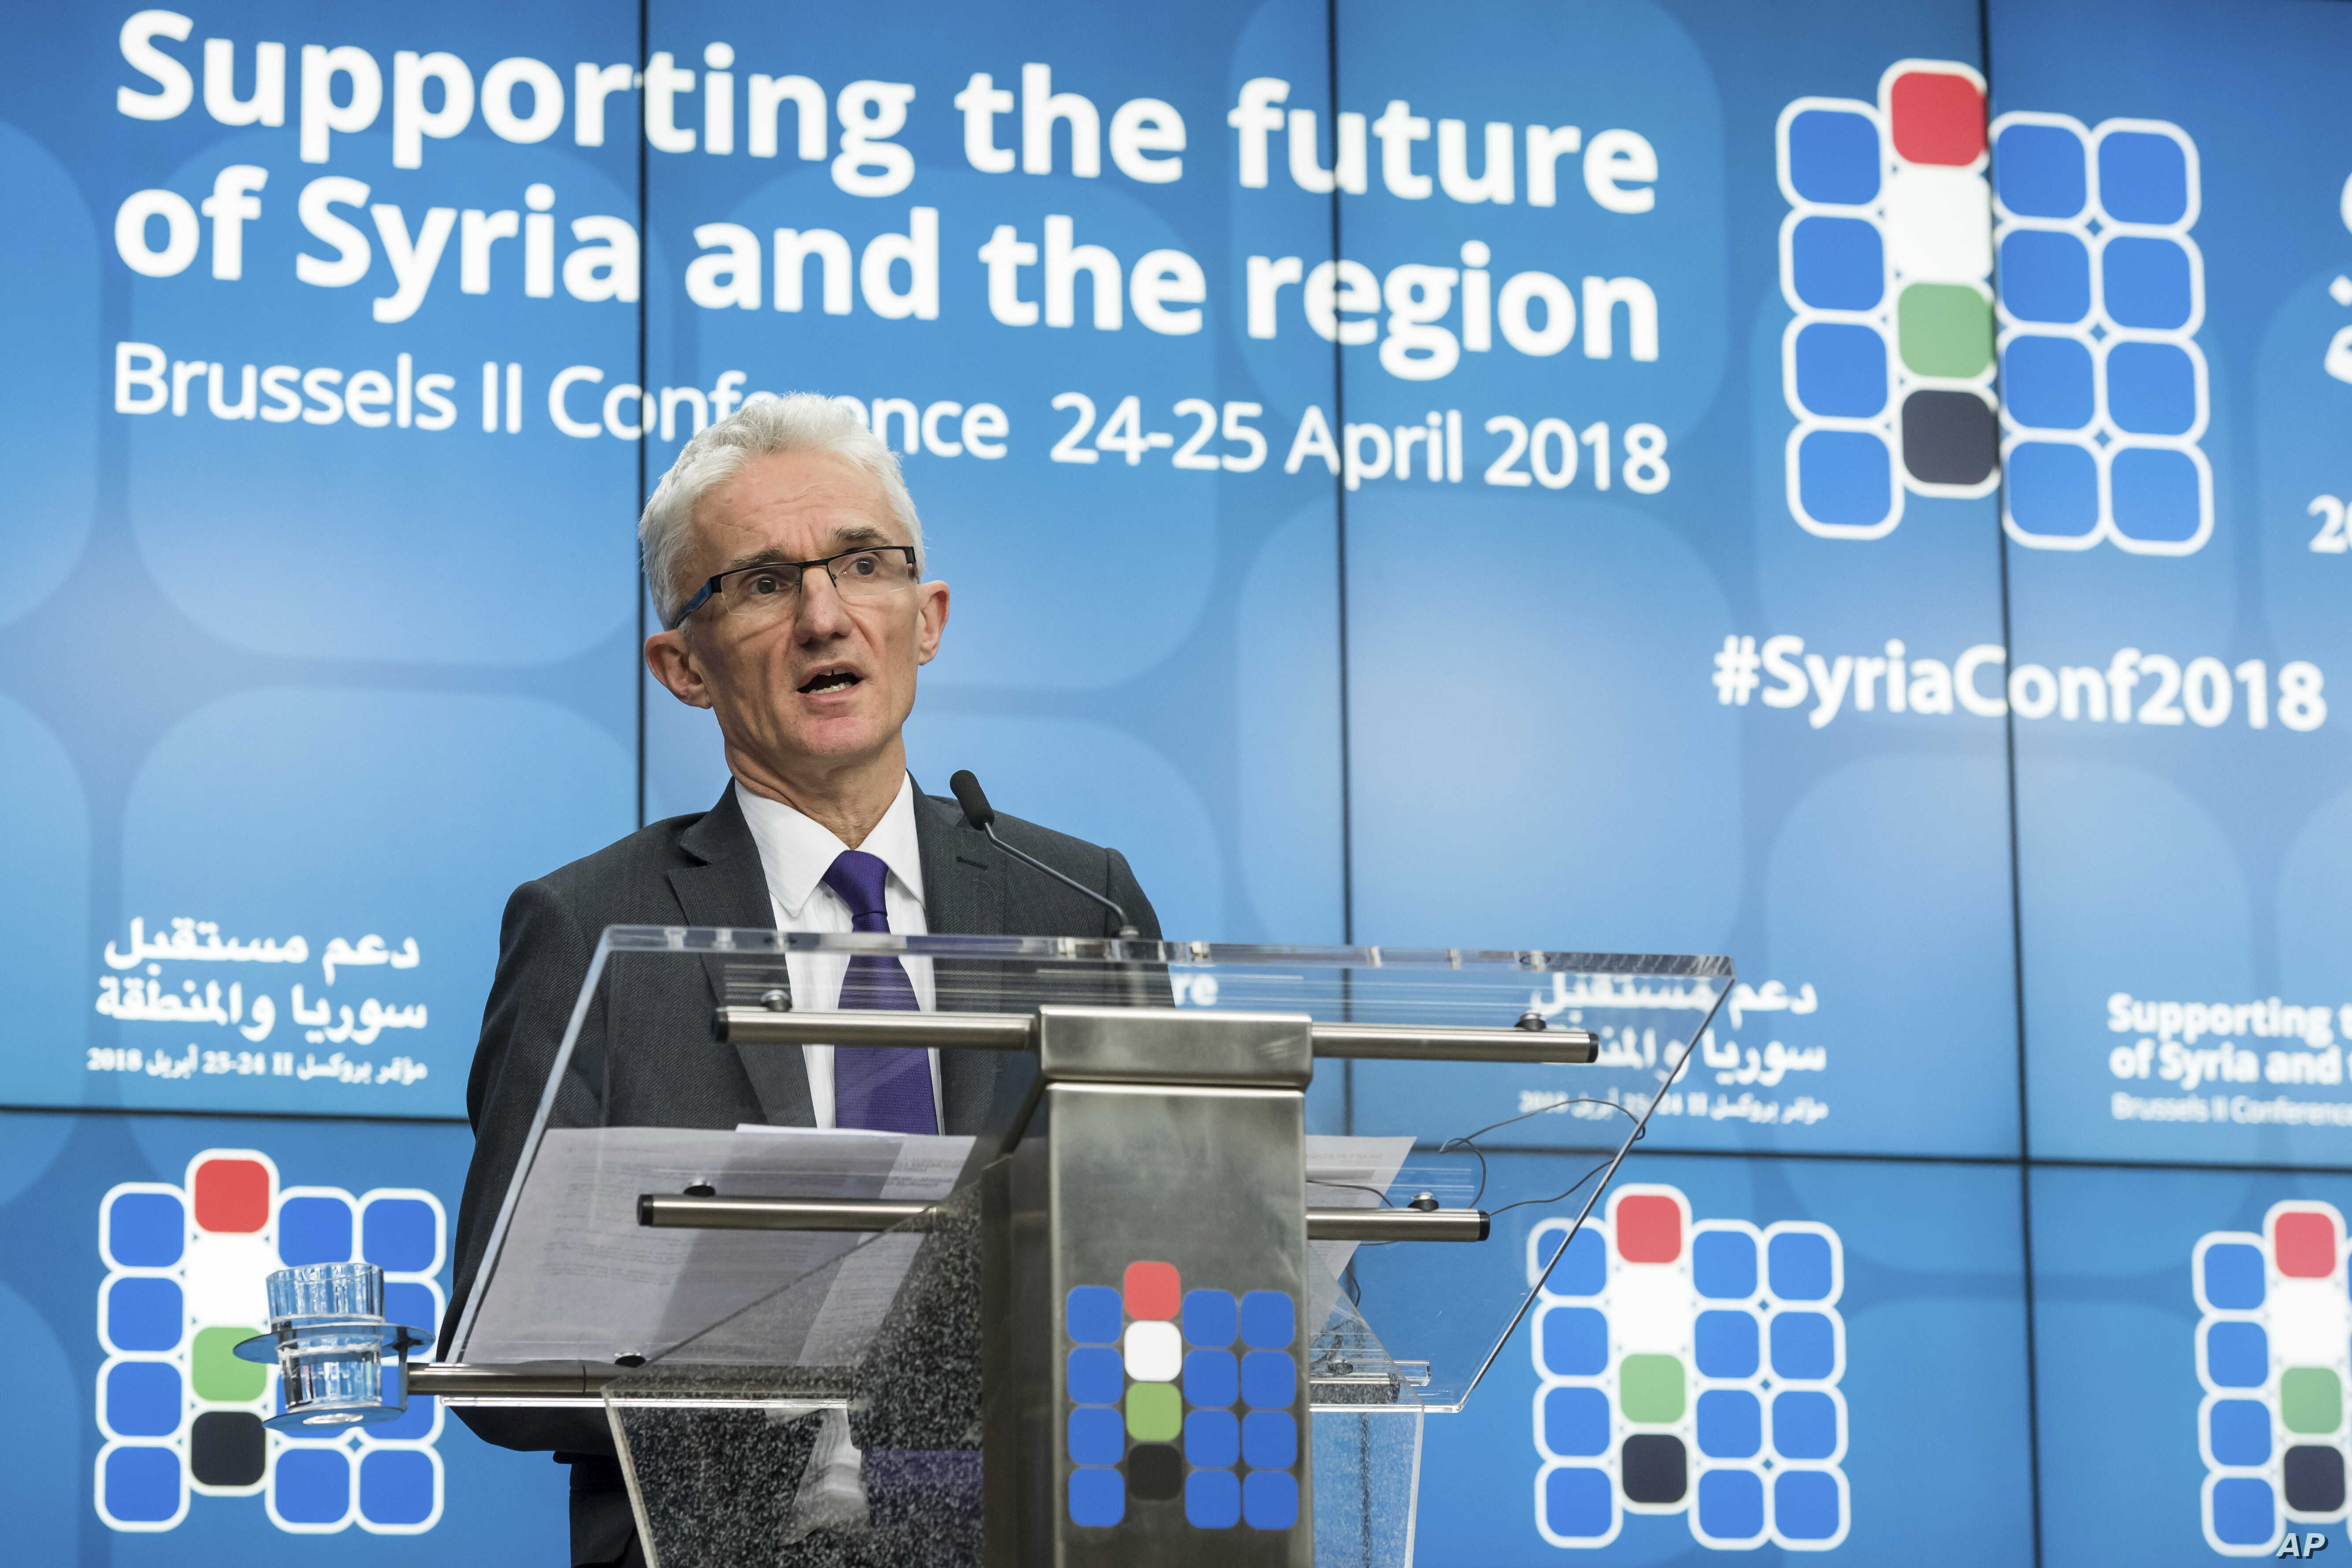 UN Under-Secretary-General for Humanitarian Affairs and Emergency Relief Coordinator Mark Lowcock addresses the media during a conference on Syria at a EU Council in Brussels, April 25, 2018.